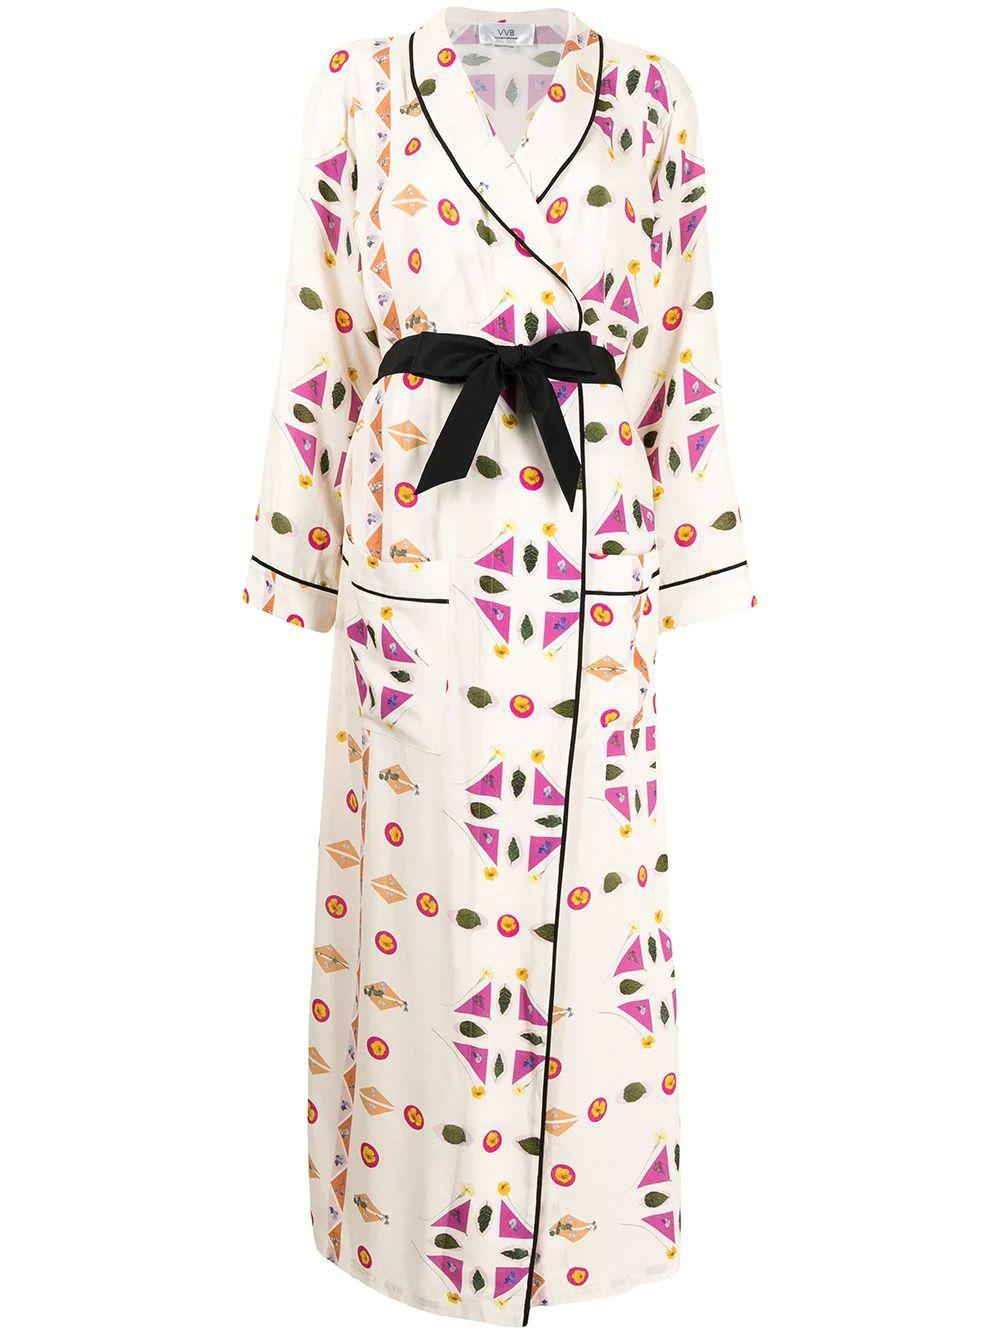 Printed Robe Dress Item # 2221WDR002736A